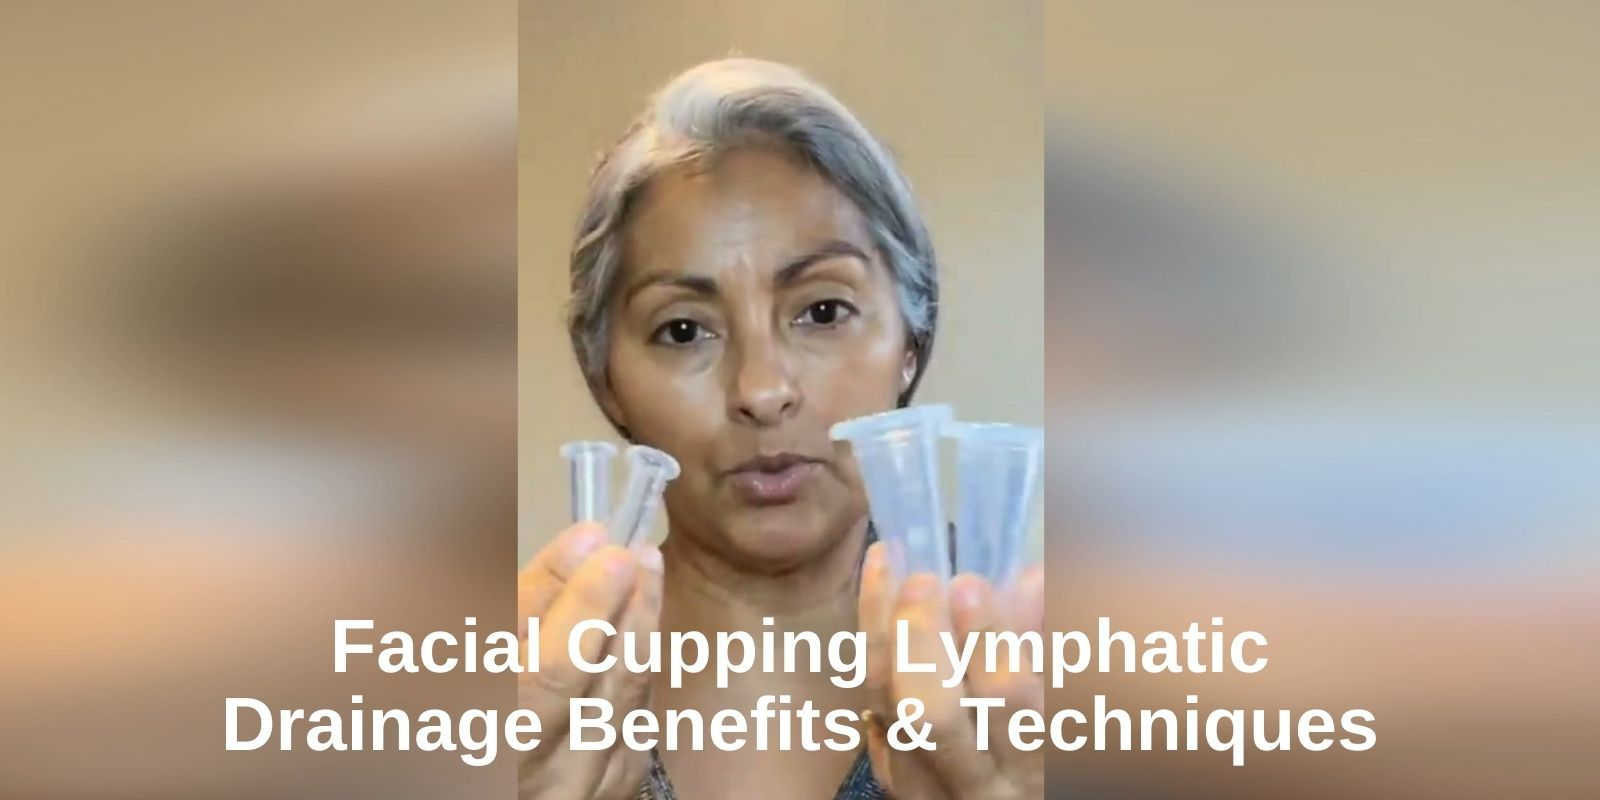 Facial Cupping Lymphatic Drainage Benefits & Techniques